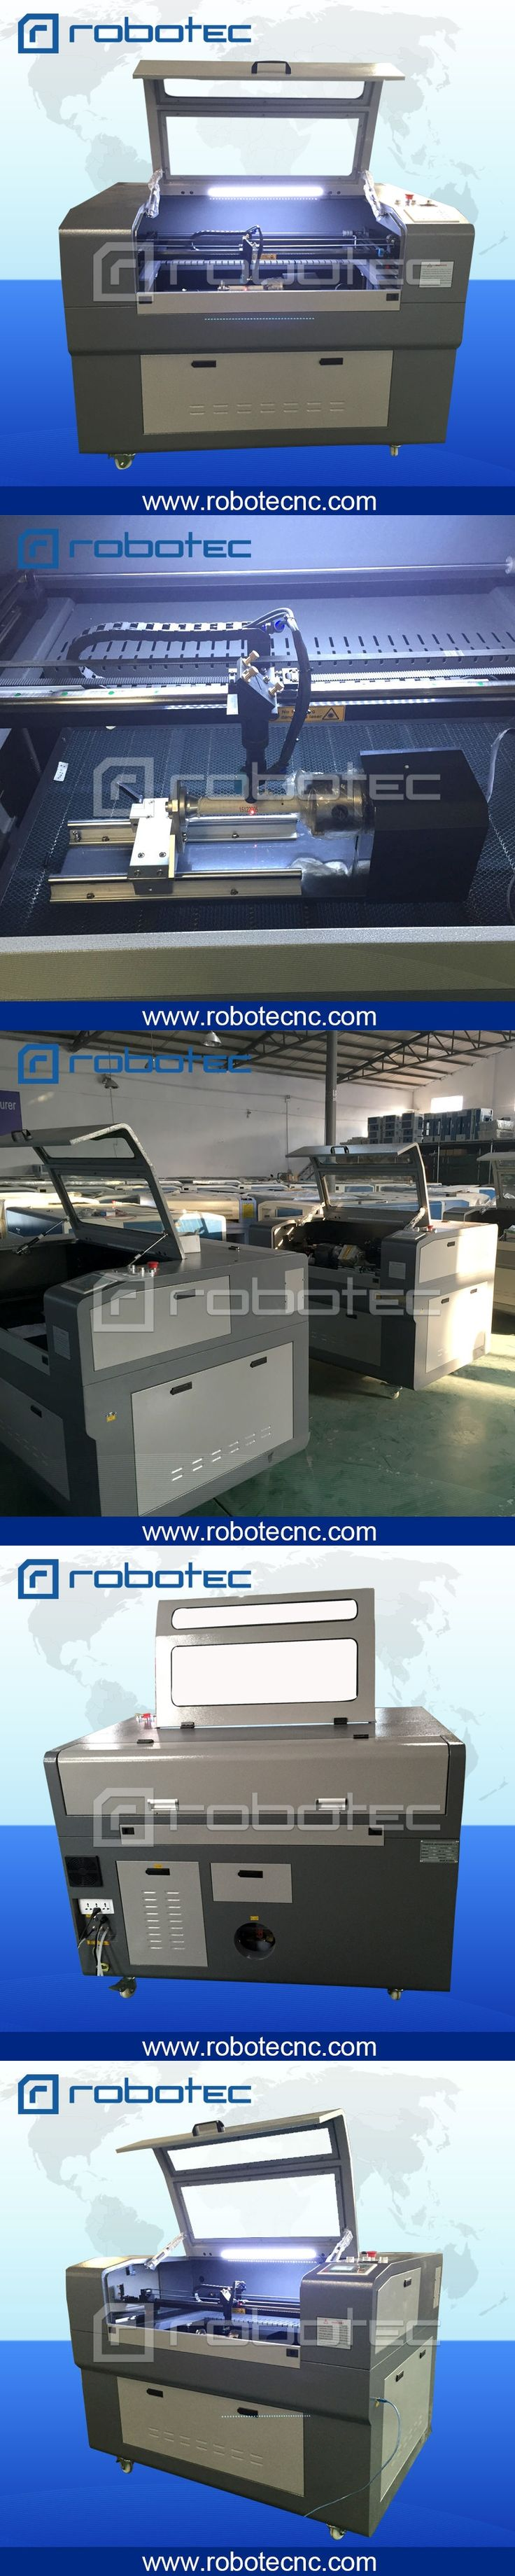 Acrylic Letter And Pvc CO2 Laser Cutting And Engraving 9060 Machines Price